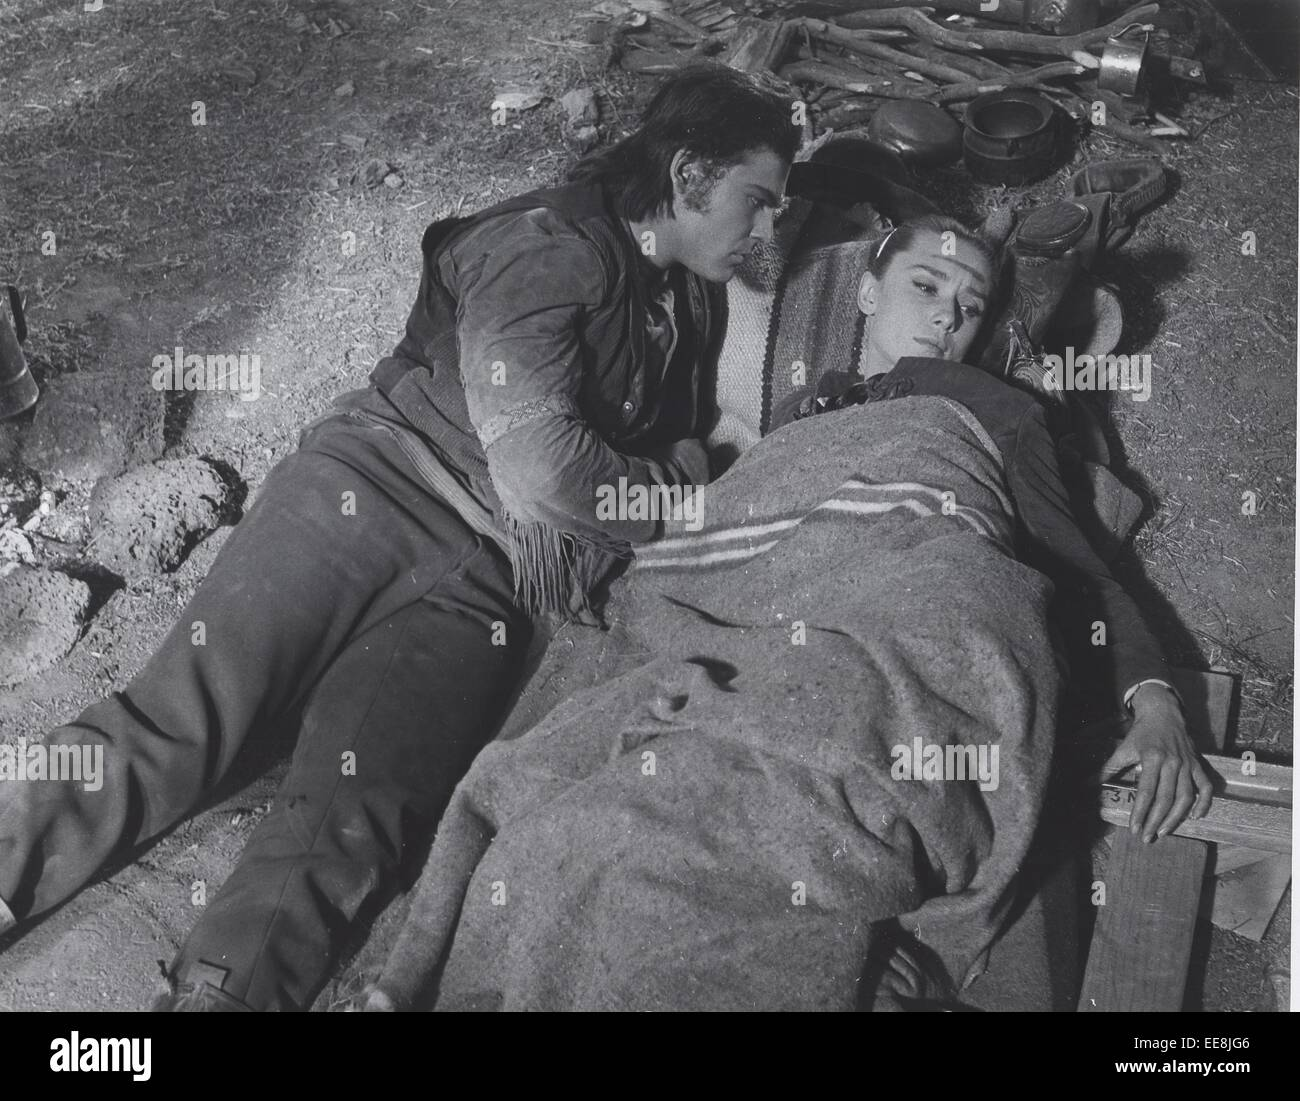 JOHN SAXON 1959.The Unforgiven.Supplied by Photos, inc. © Supplied By Globe Photos, Inc/Globe Photos/ZUMA Wire/Alamy - Stock Image